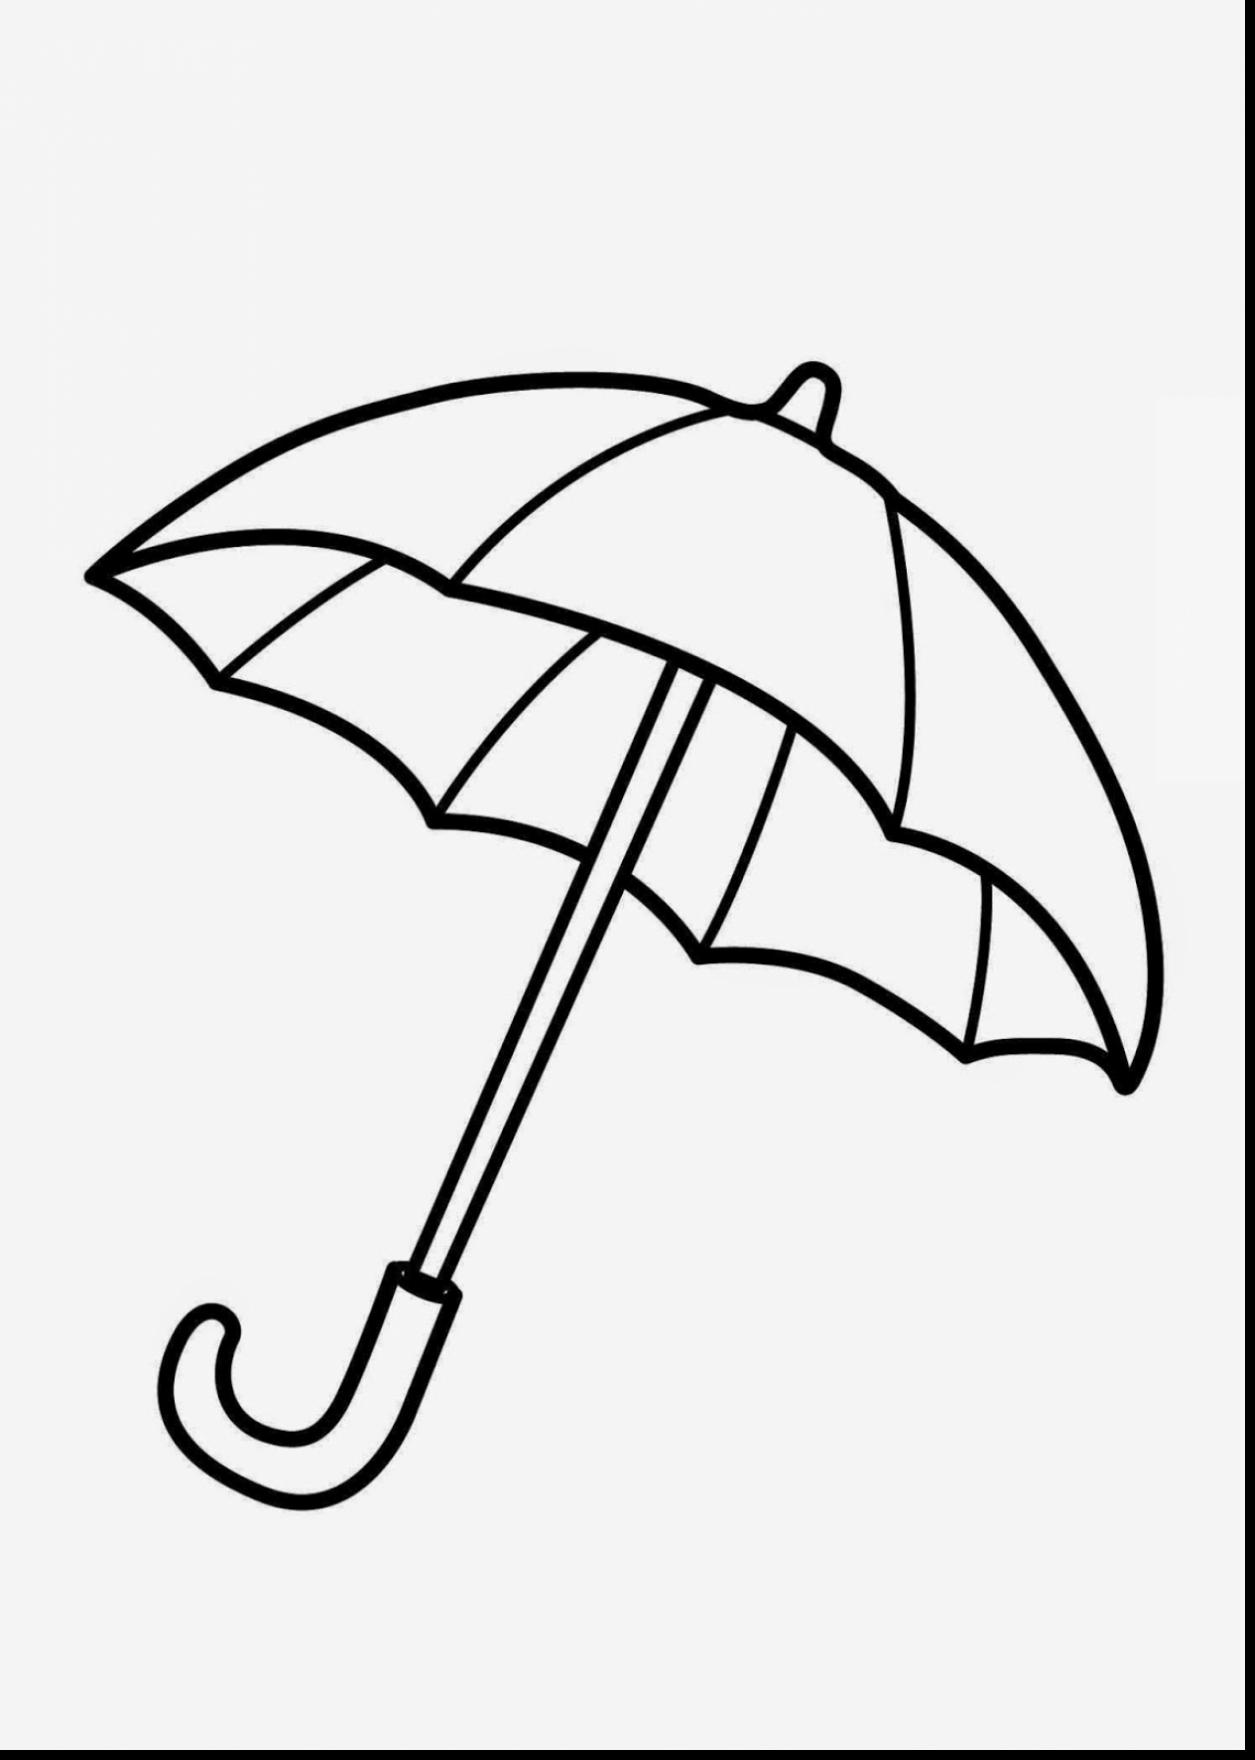 1255x1760 Extraordinary Umbrella Coloring Pages Printable With Umbrella